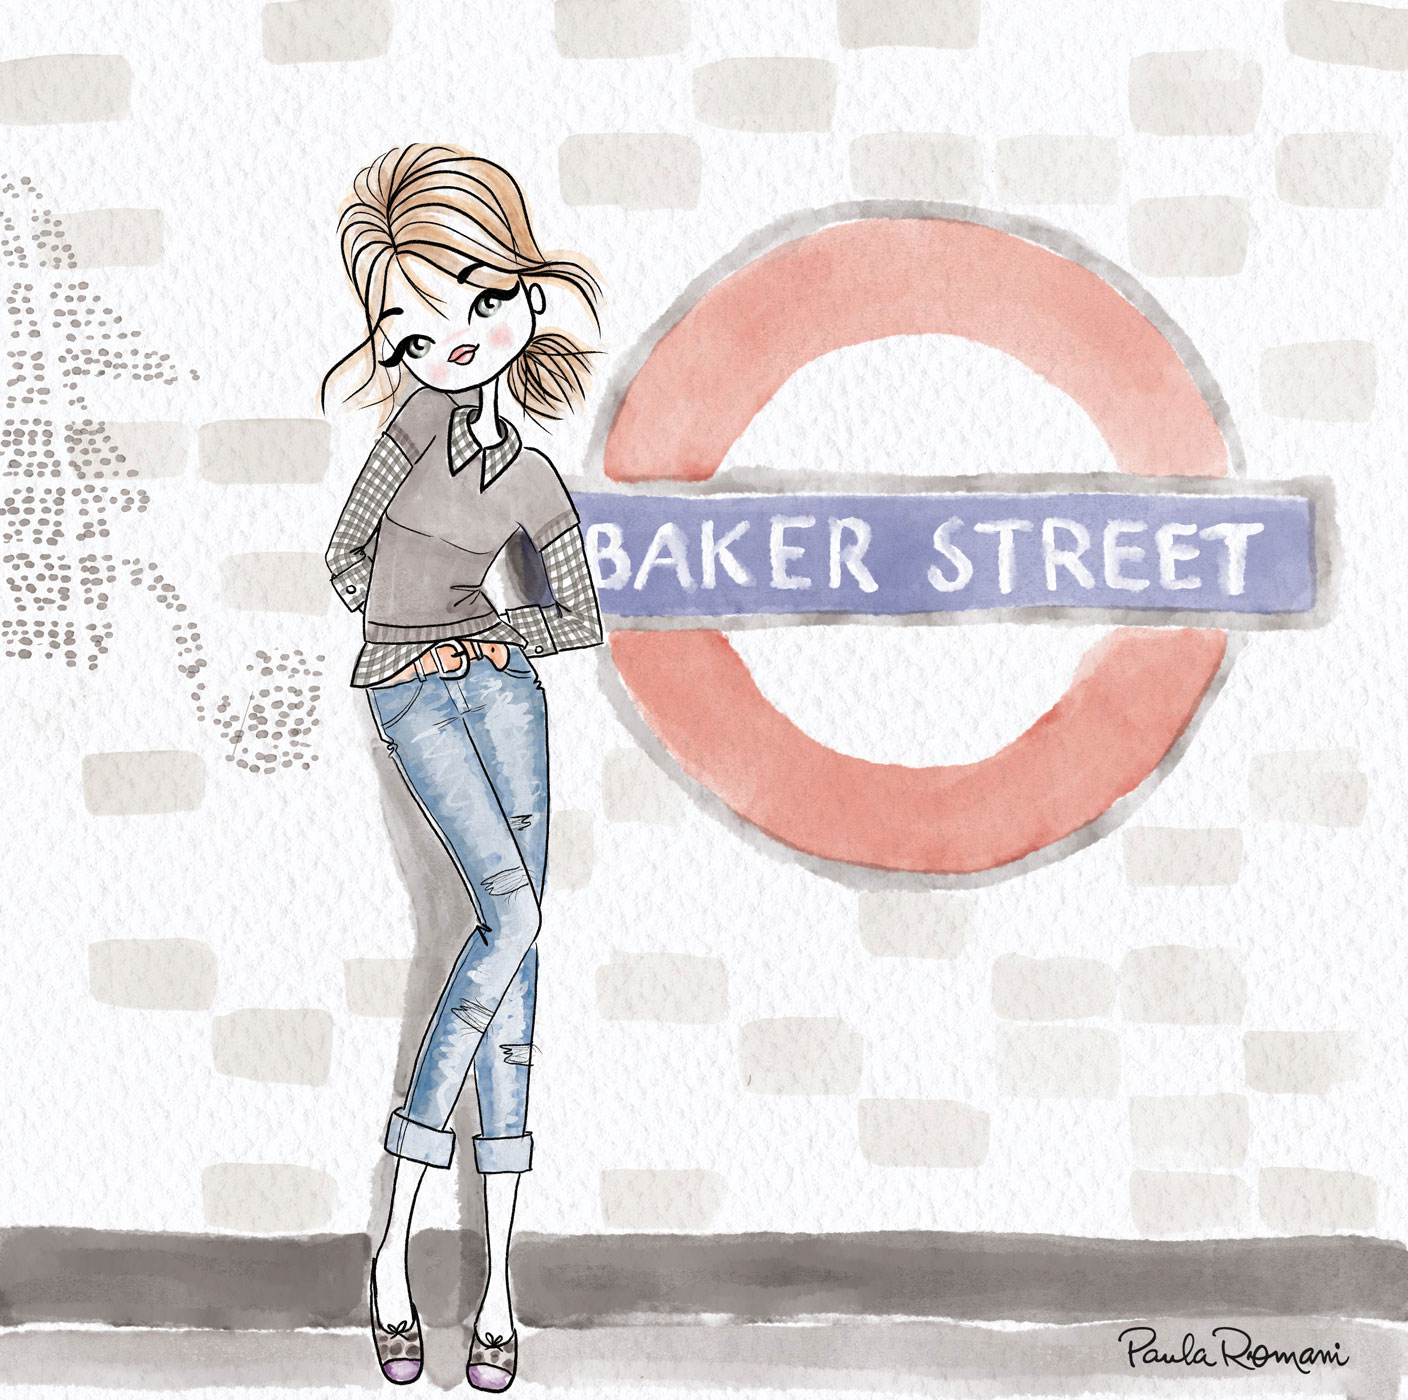 baker-street-tube-station